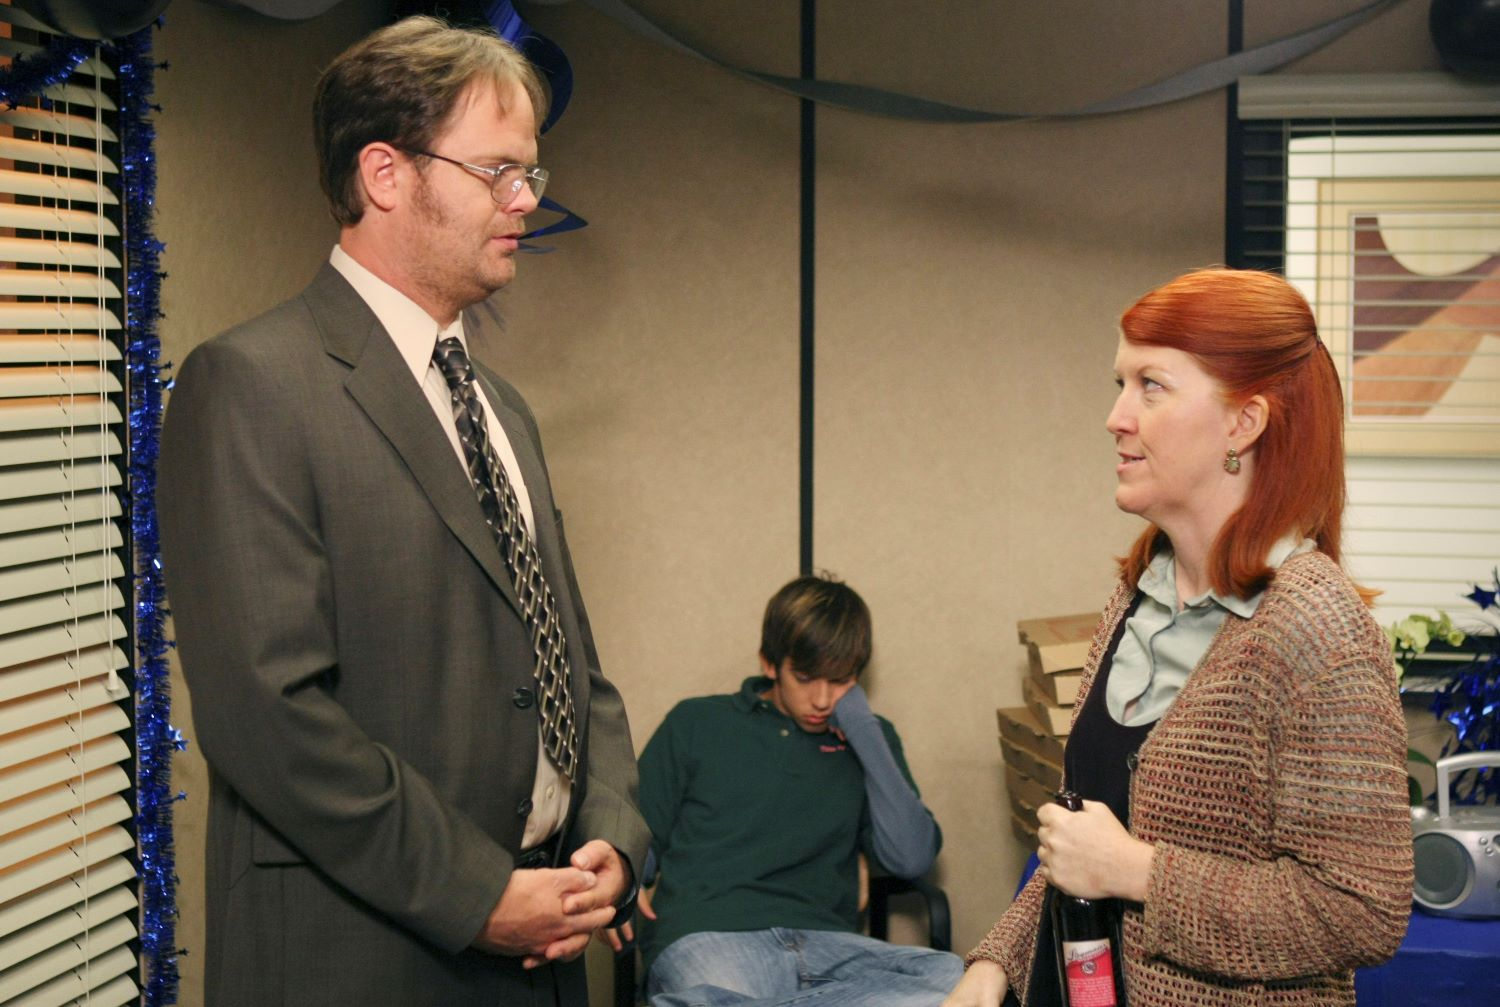 Rainn Wilson, Kevin McHale, and Kate Flannery on 'The Office'